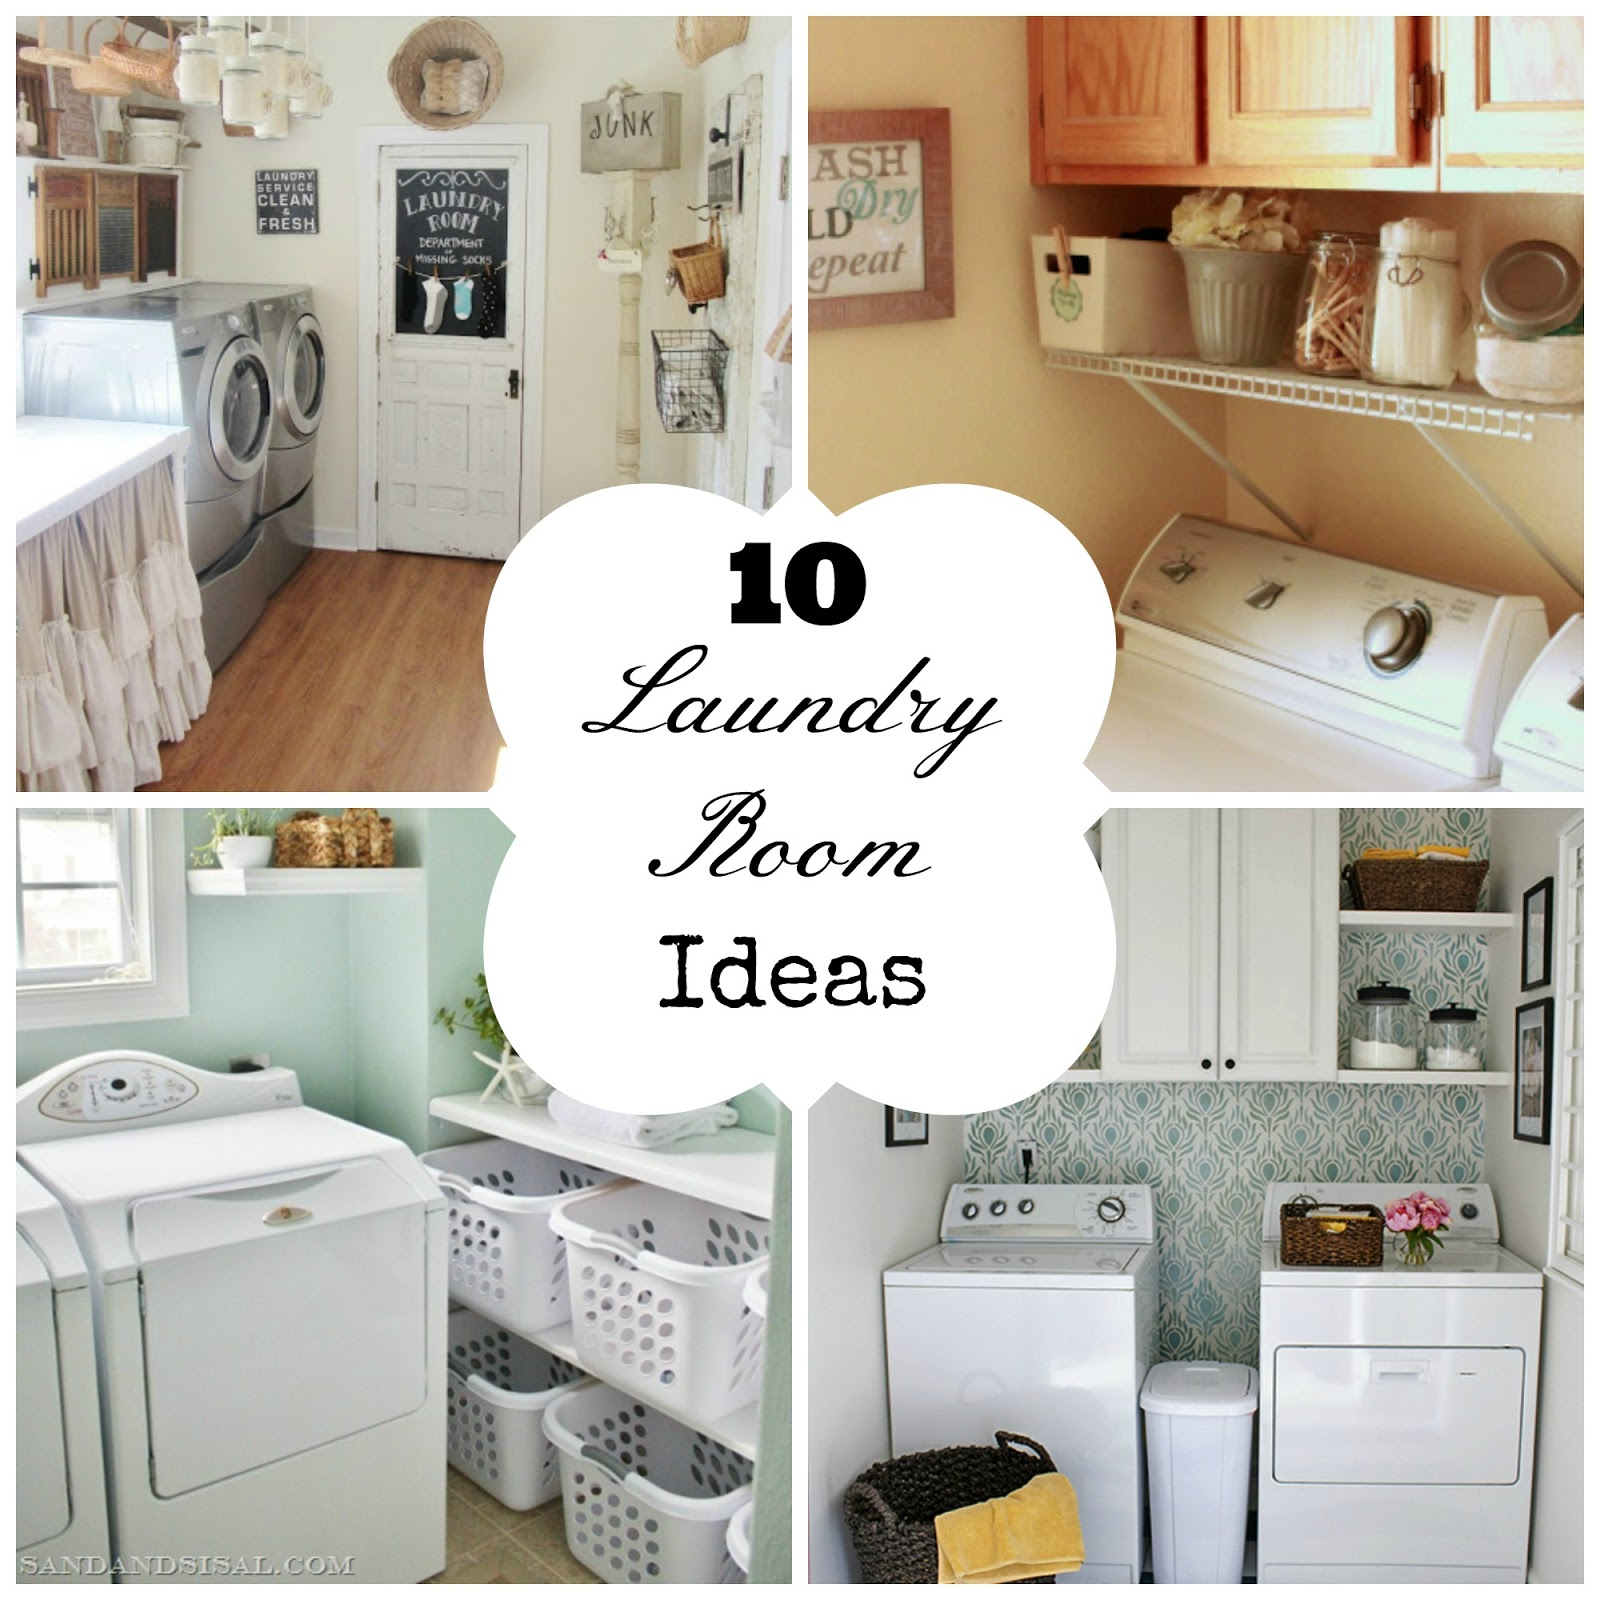 10 laundry room ideas fun home things for 10 by 10 room designs